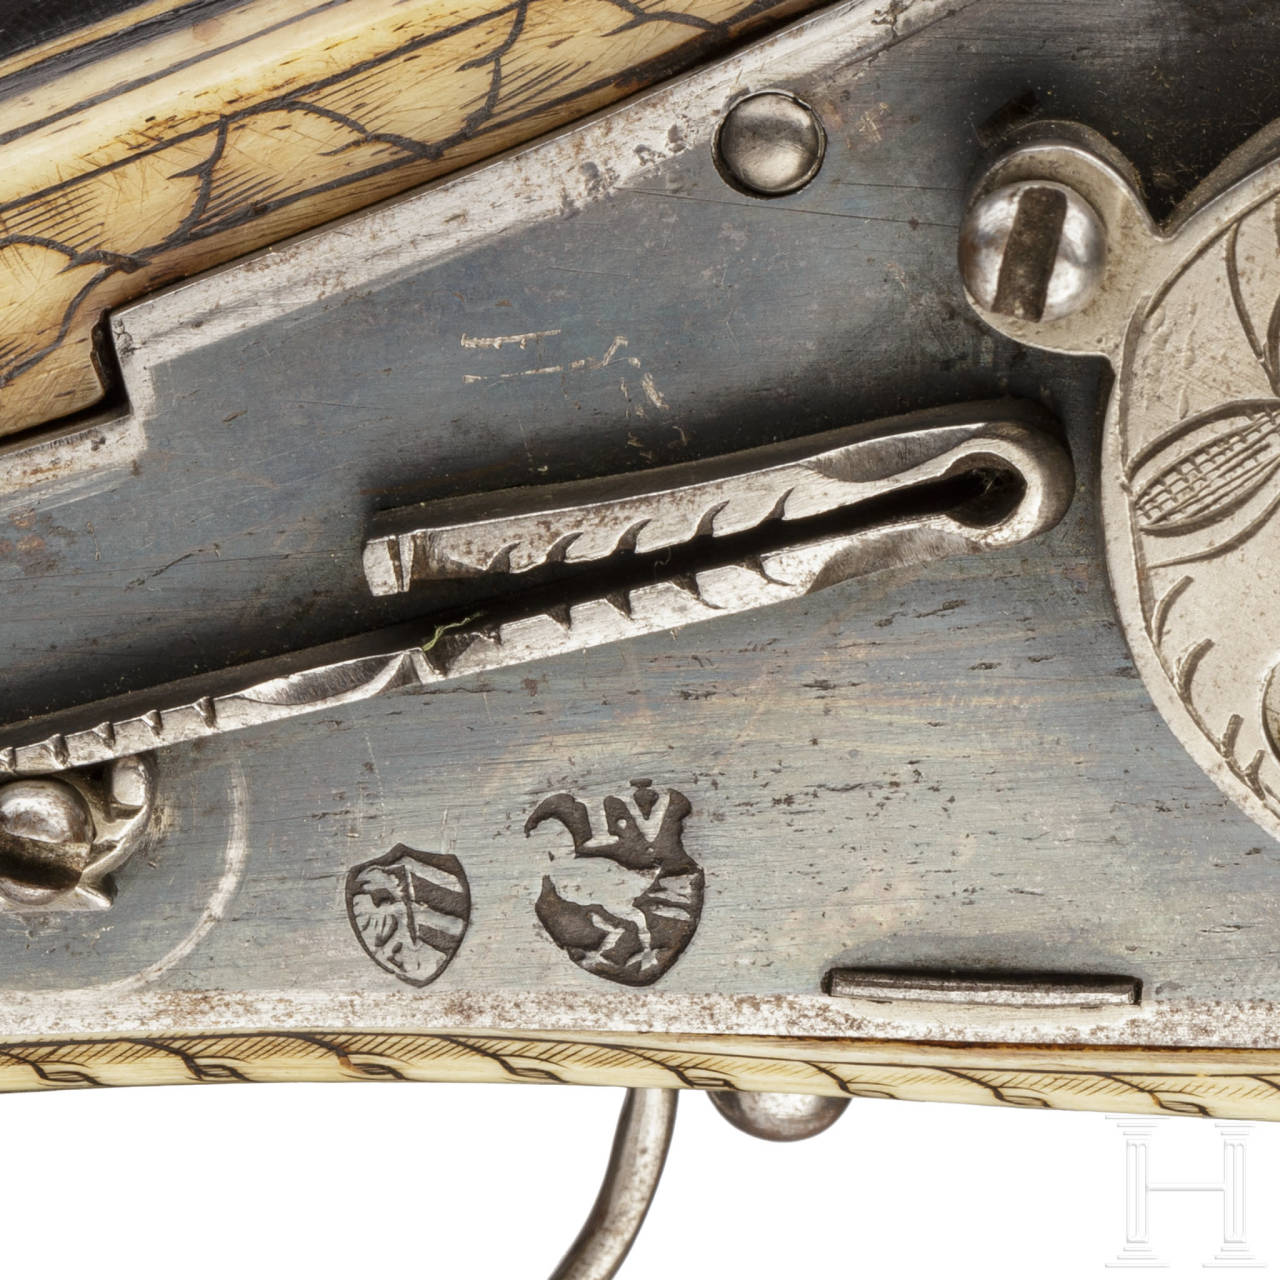 Two South German wheellock puffers of very similar manufacture, late 16th century